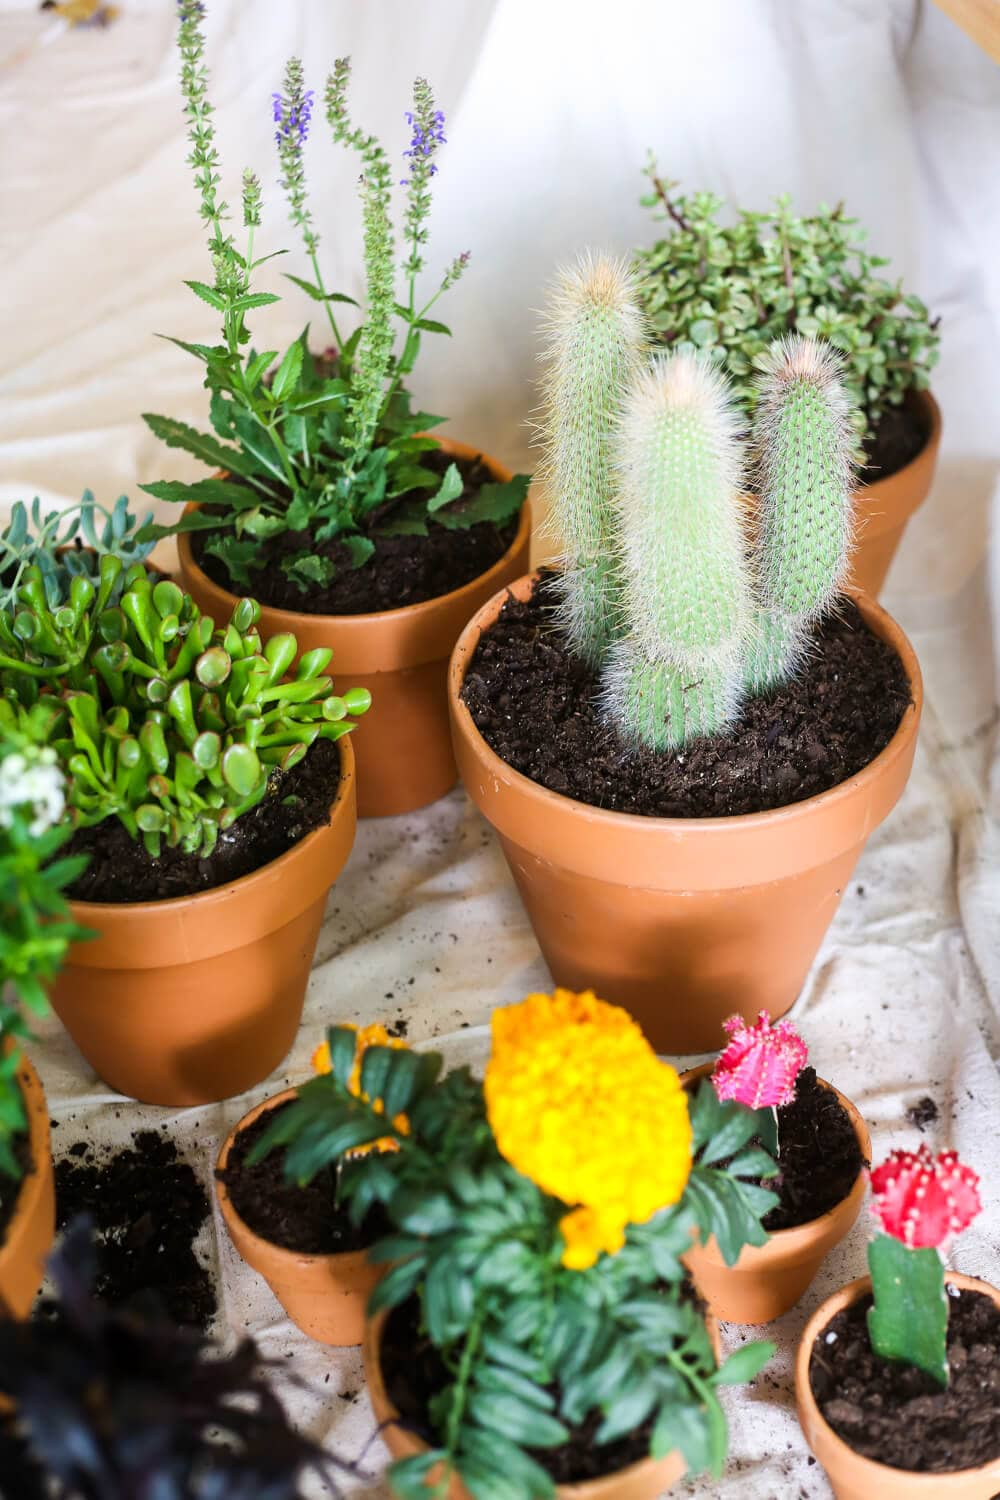 Tips for planting succulents